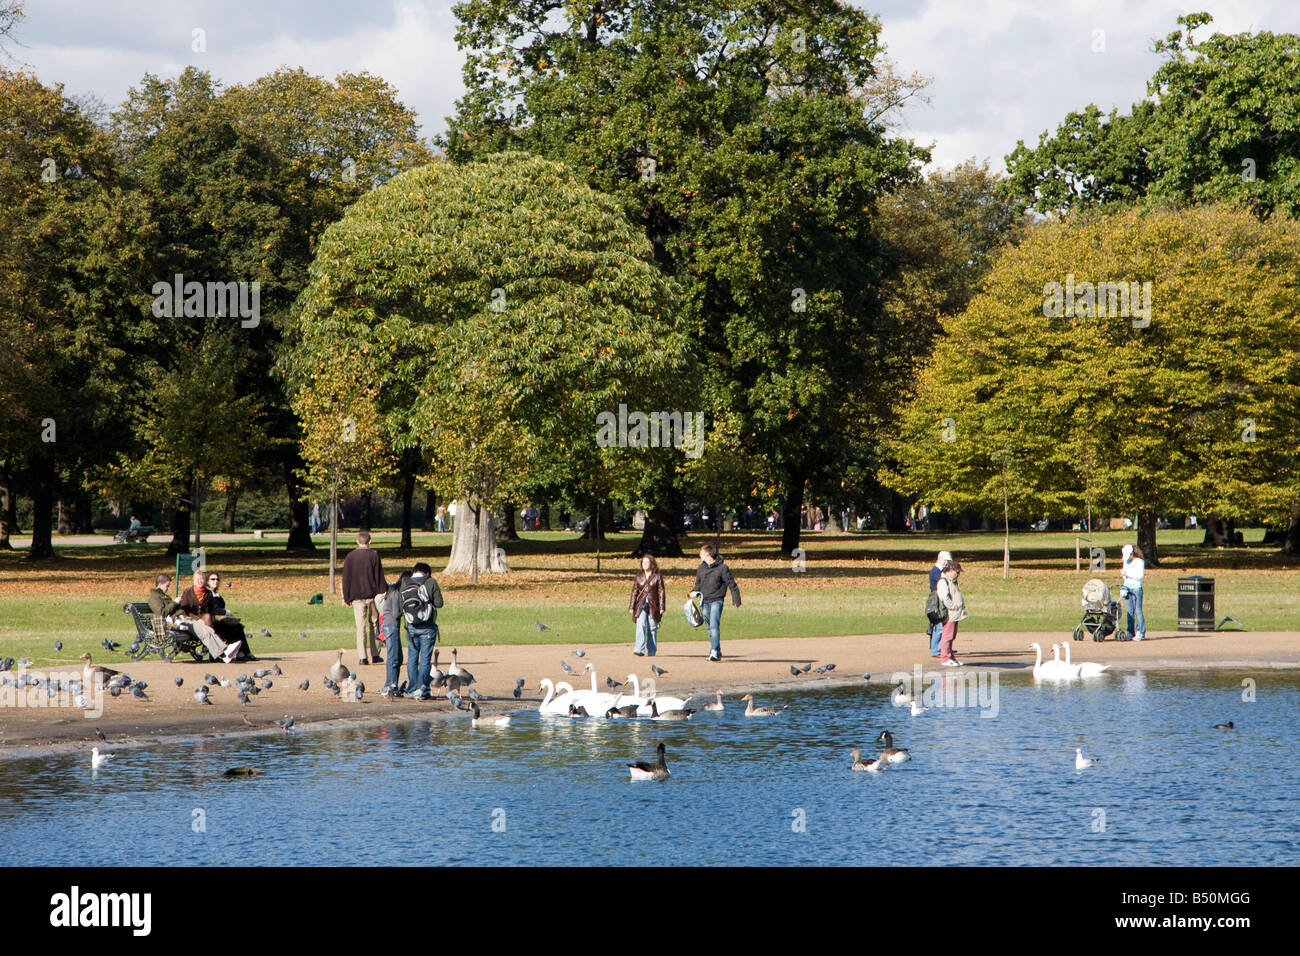 List of synonyms and antonyms of the word kensington park for Kensington park